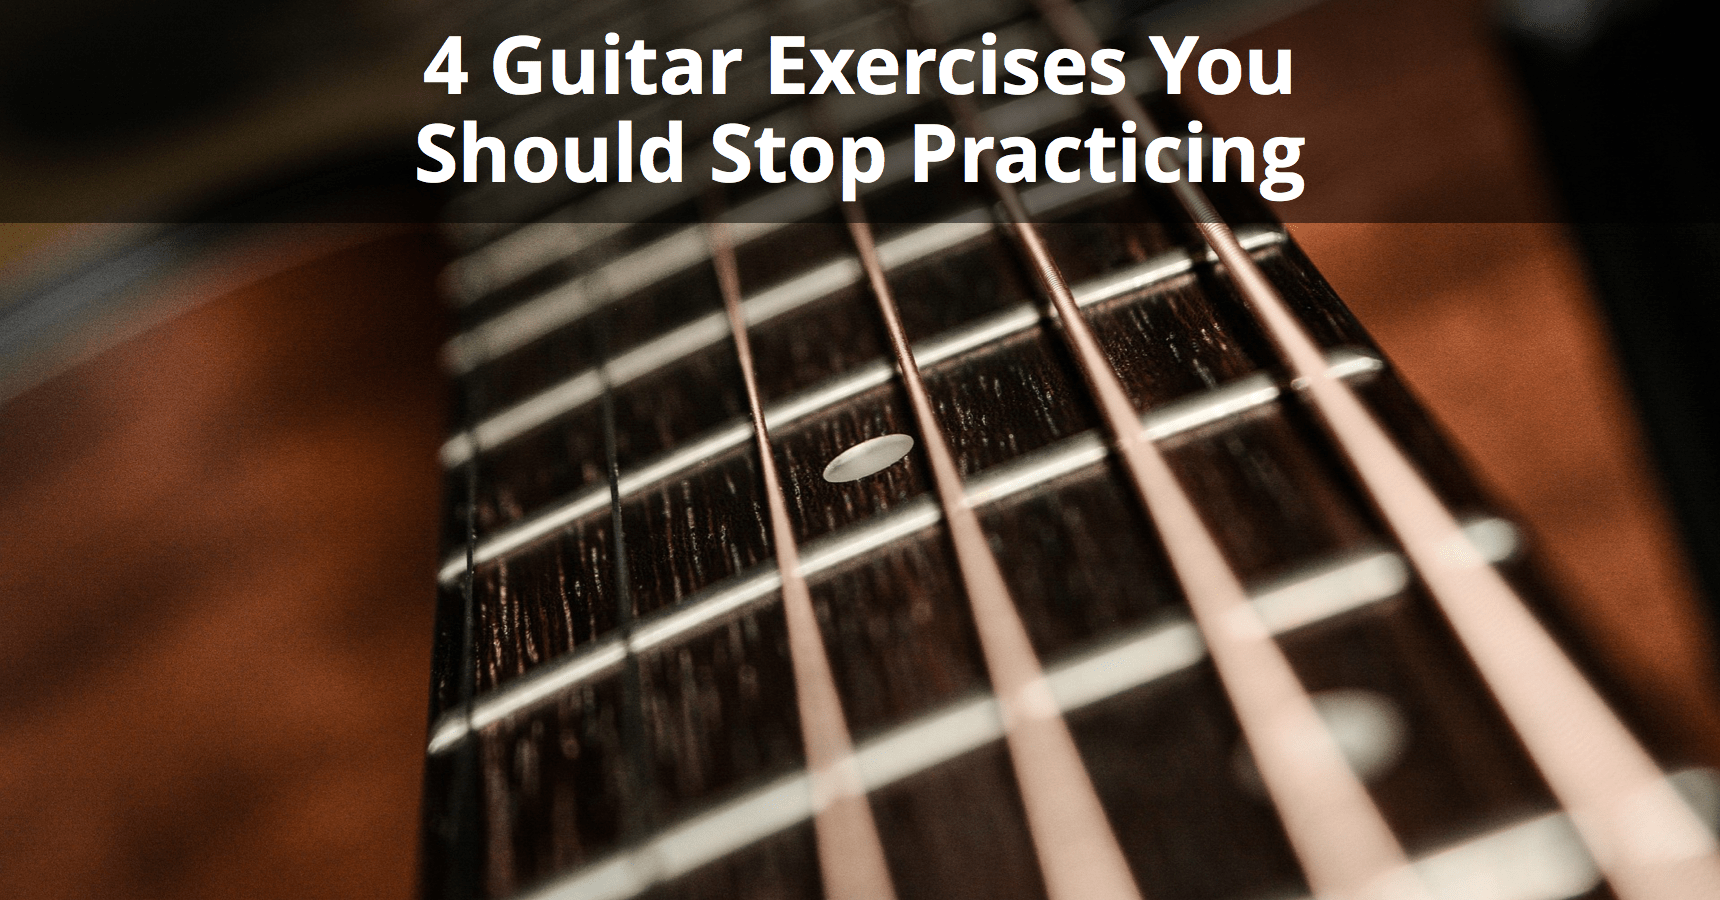 4 Guitar Exercises You Should Stop Practicing Musician Tuts